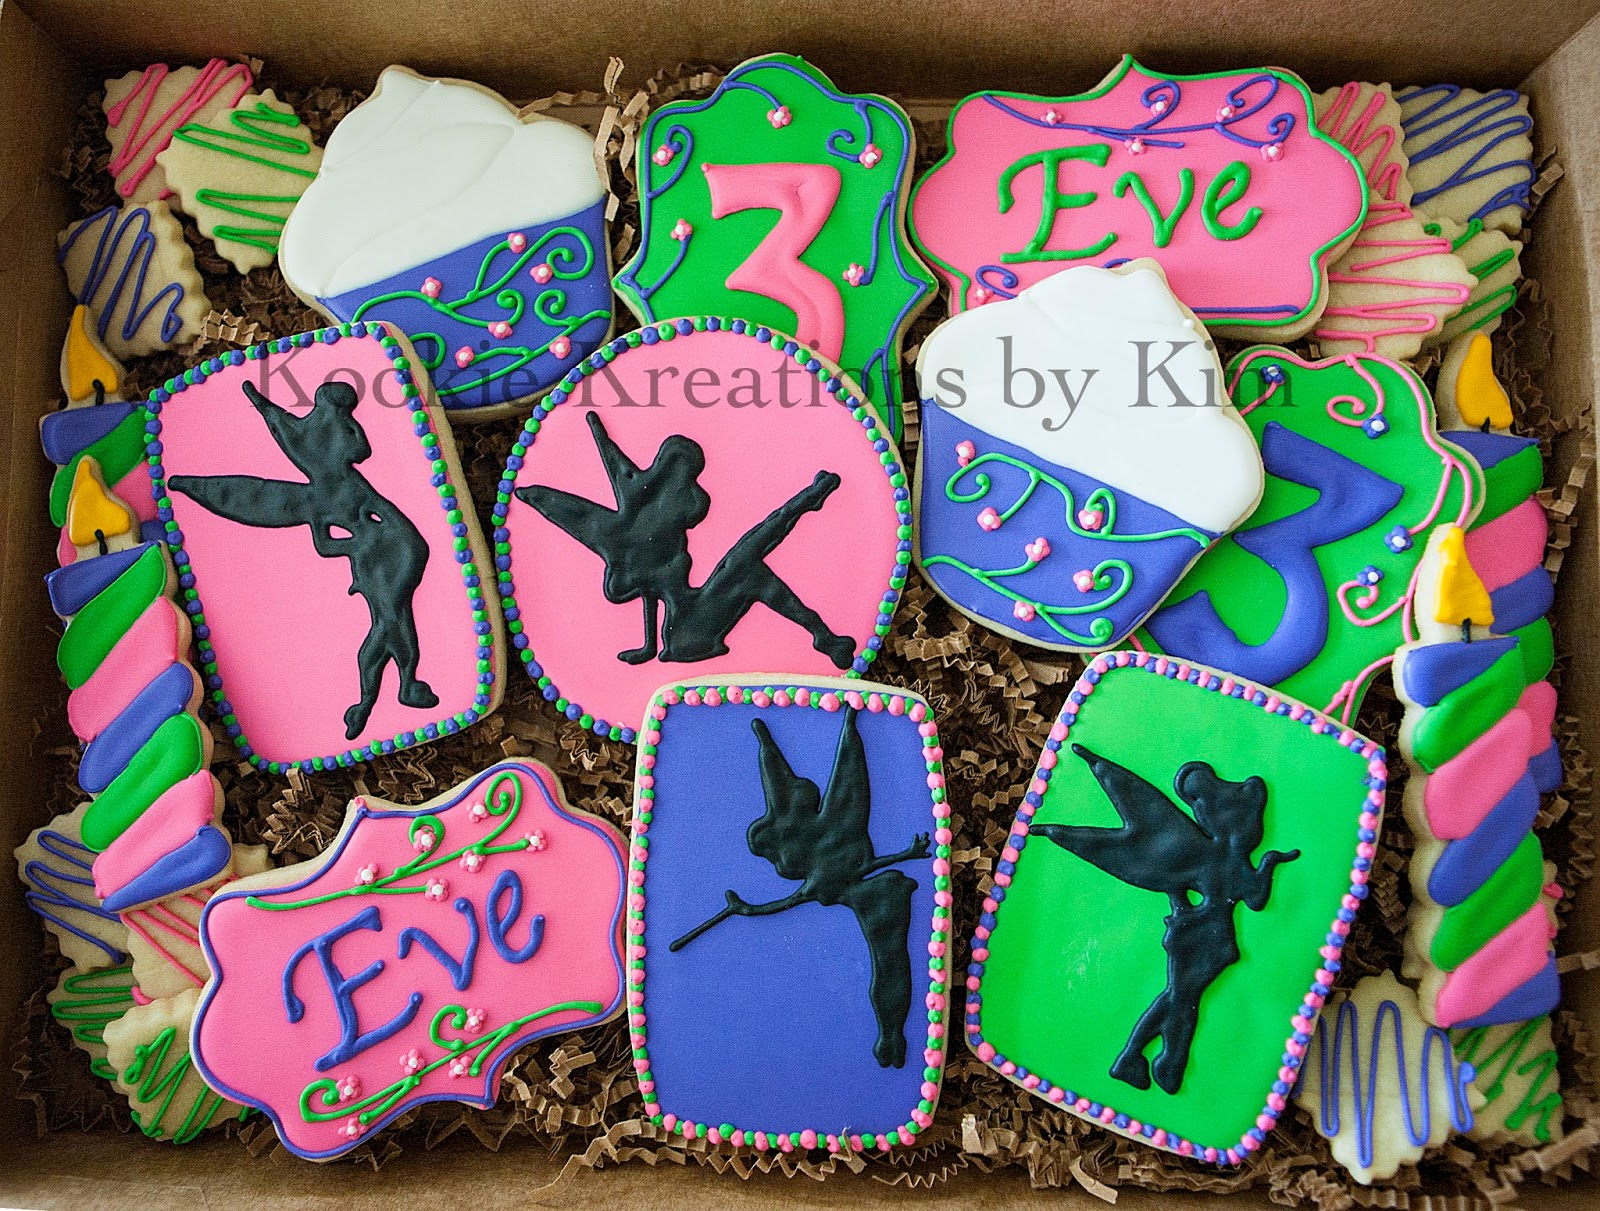 kookie kreations by kim  what a year